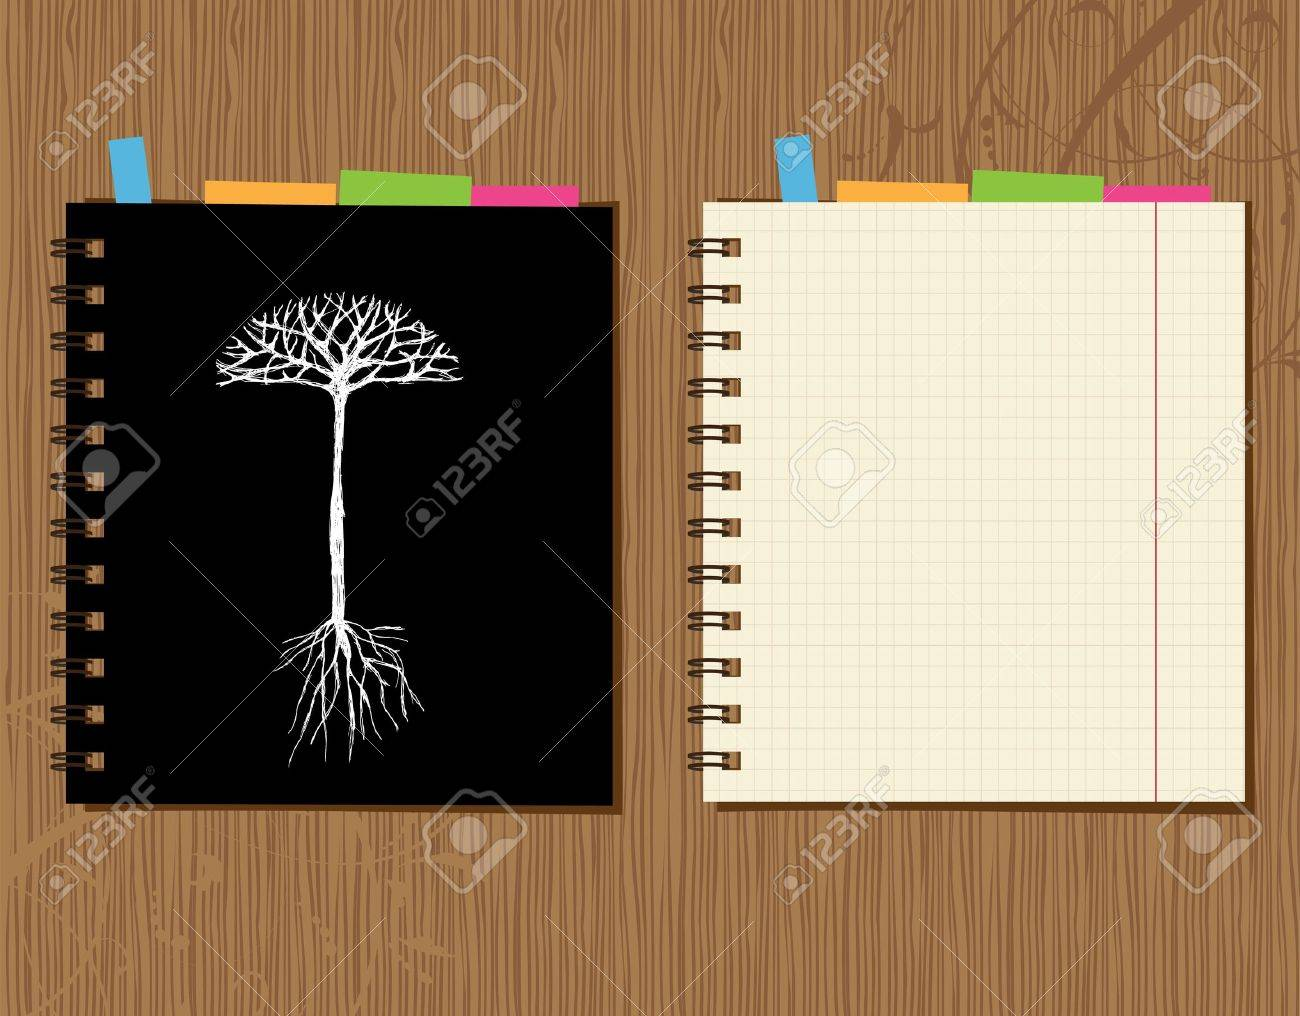 Notebook cover and page design on wooden background Stock Vector - 7770160